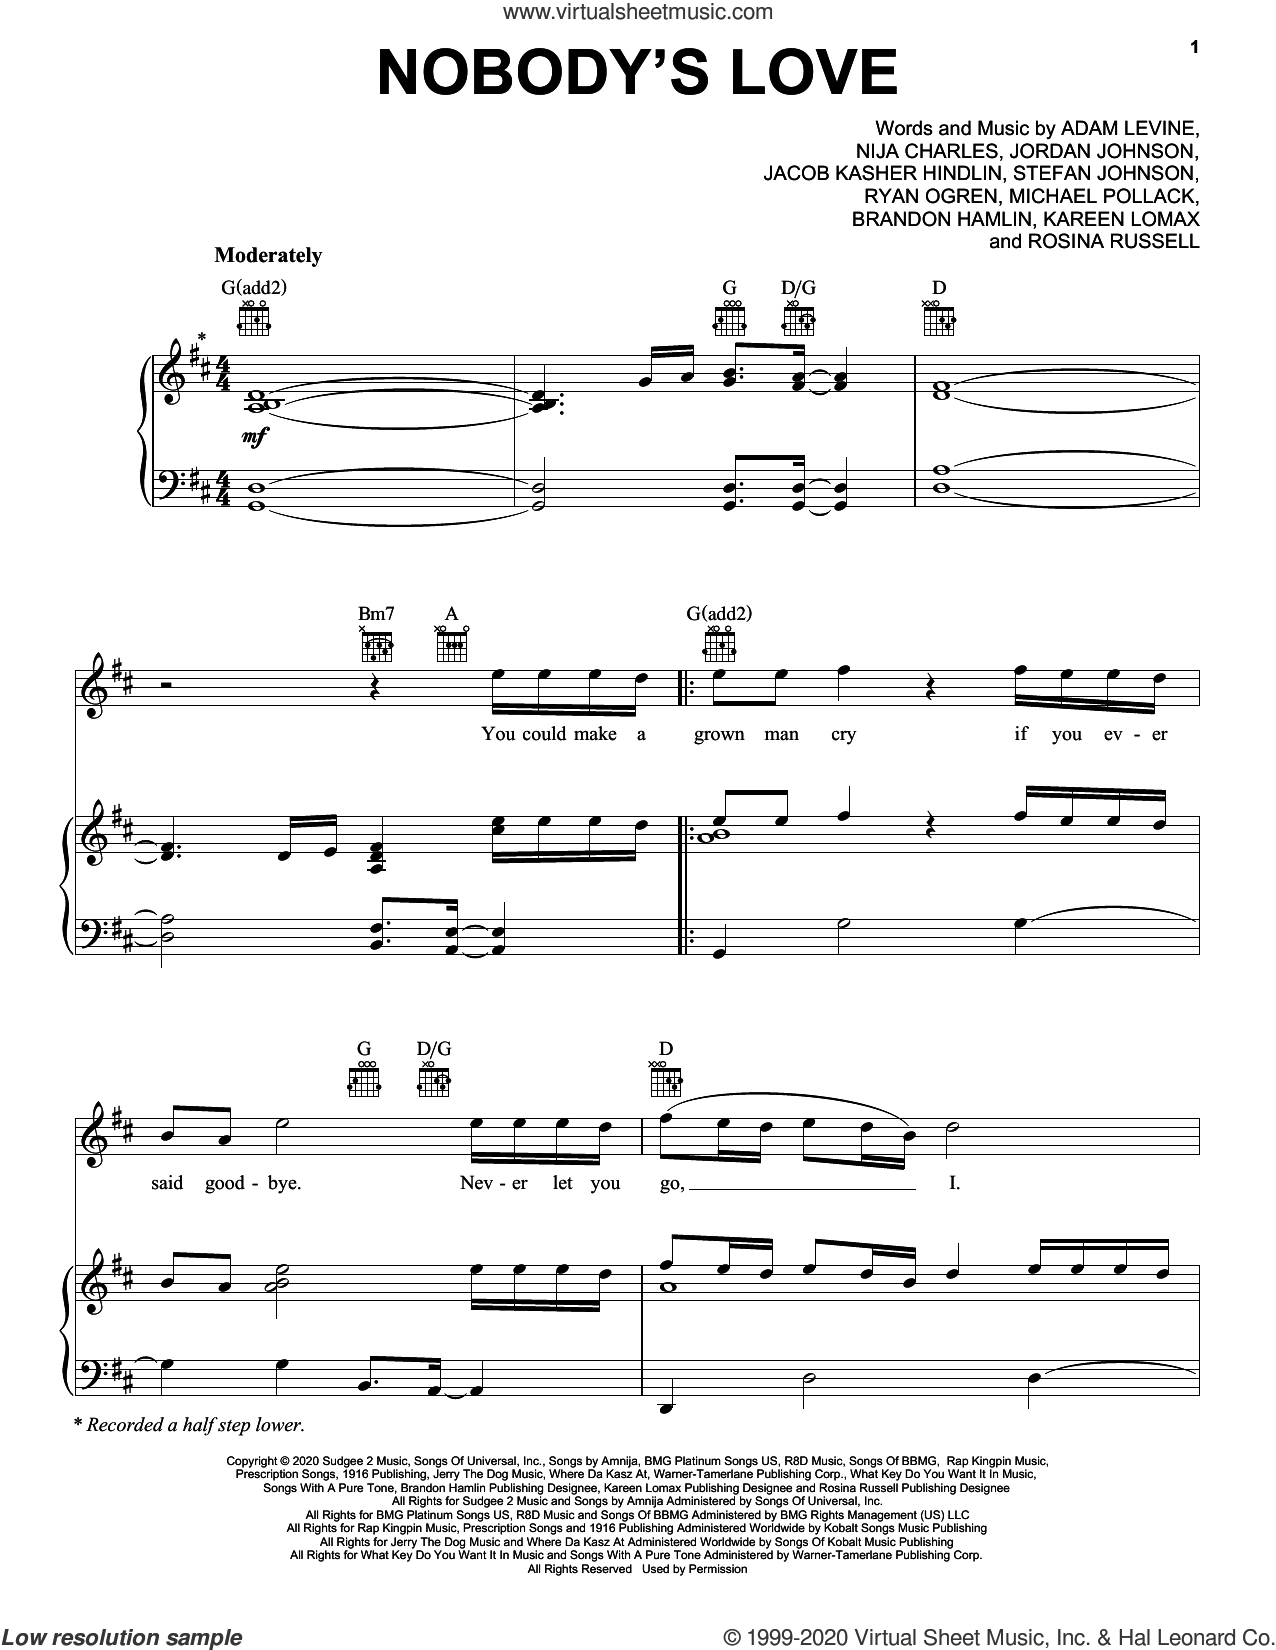 Nobody's Love sheet music for voice, piano or guitar by Maroon 5, Adam Levine, Brandon Hamlin, Jacob Kasher Hindlin, Jordan Johnson, Kareen Lomax, Michael Pollack, Nija Charles, Rosina Russell, Ryan Ogren and Stefan Johnson, intermediate skill level